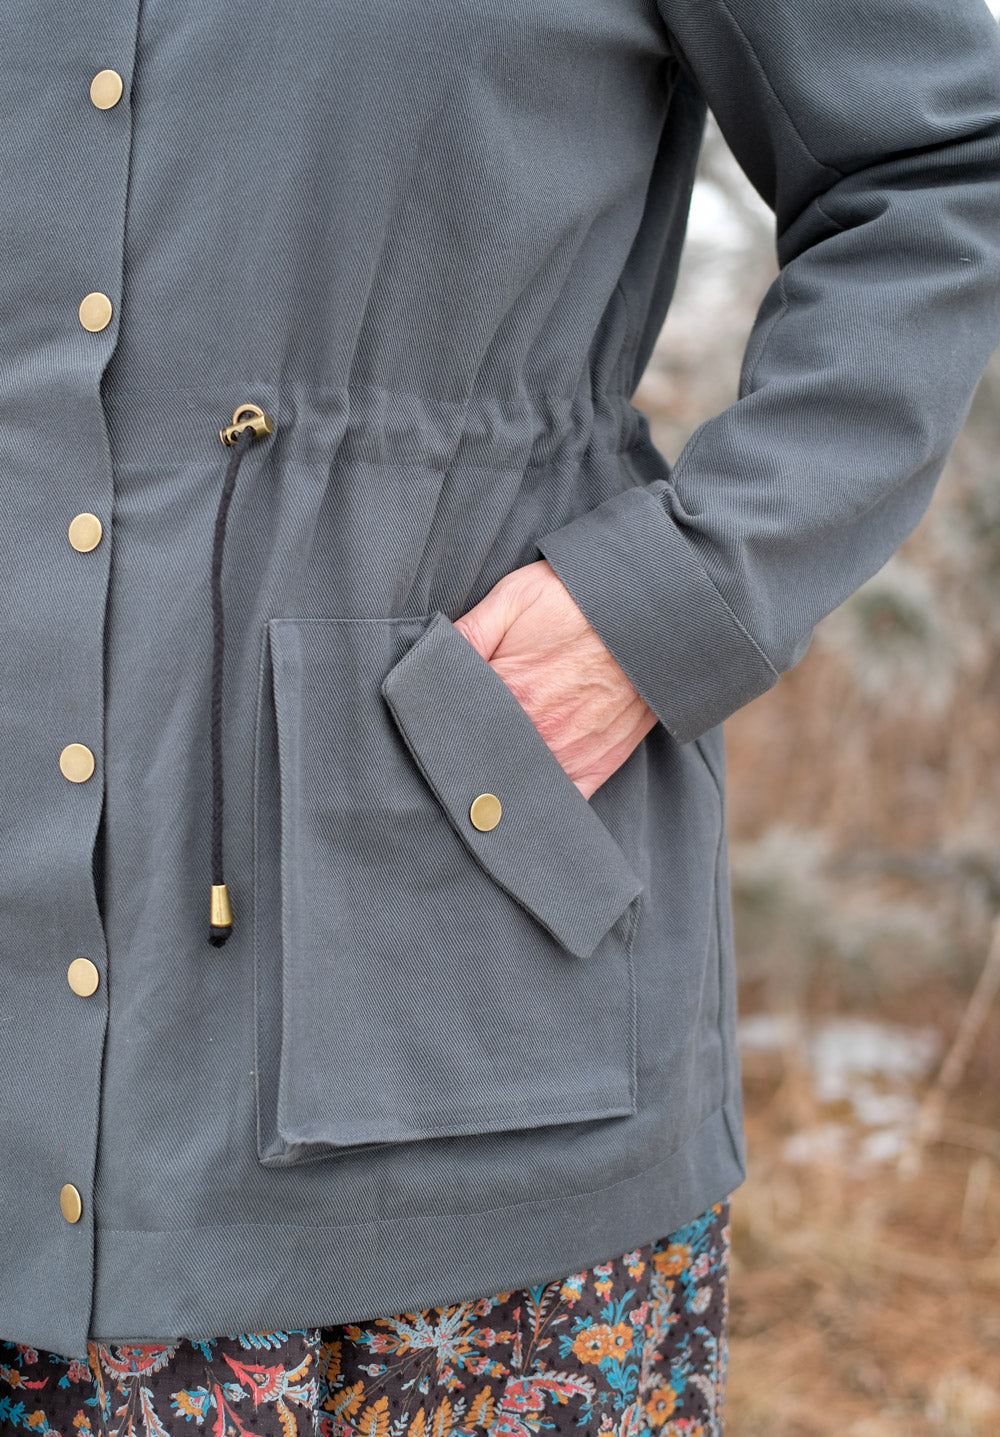 Pocket Detail of the Kelly Anorak Jacket